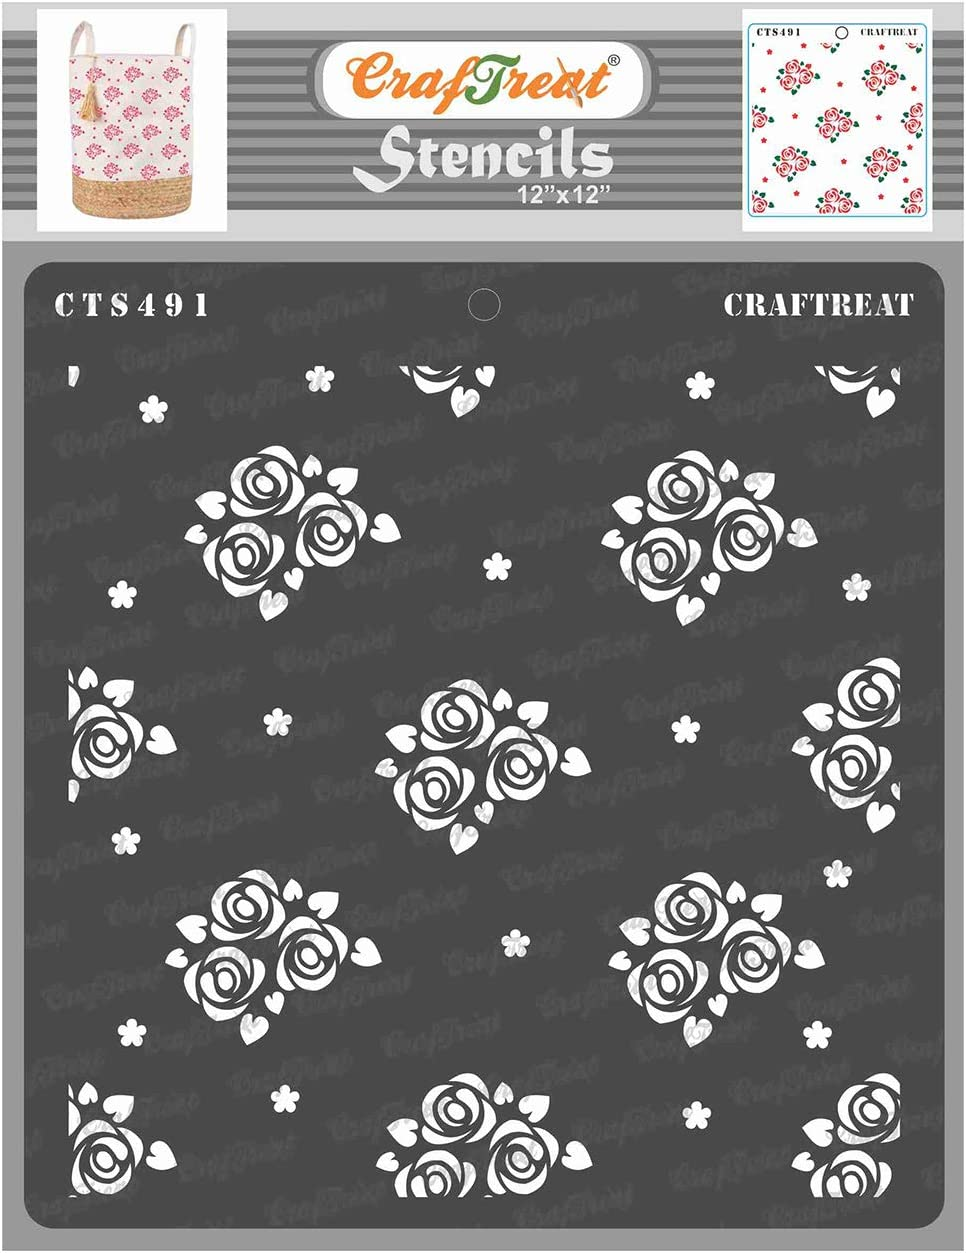 CrafTreat Wall Pattern Stencils for Painting on Wood, Tile, Canvas, Paper, Fabric and Floor - Mini Rose Background Stencil - 12x12 Inches - Reusable DIY Art and Craft Stencils Pattern for Painting